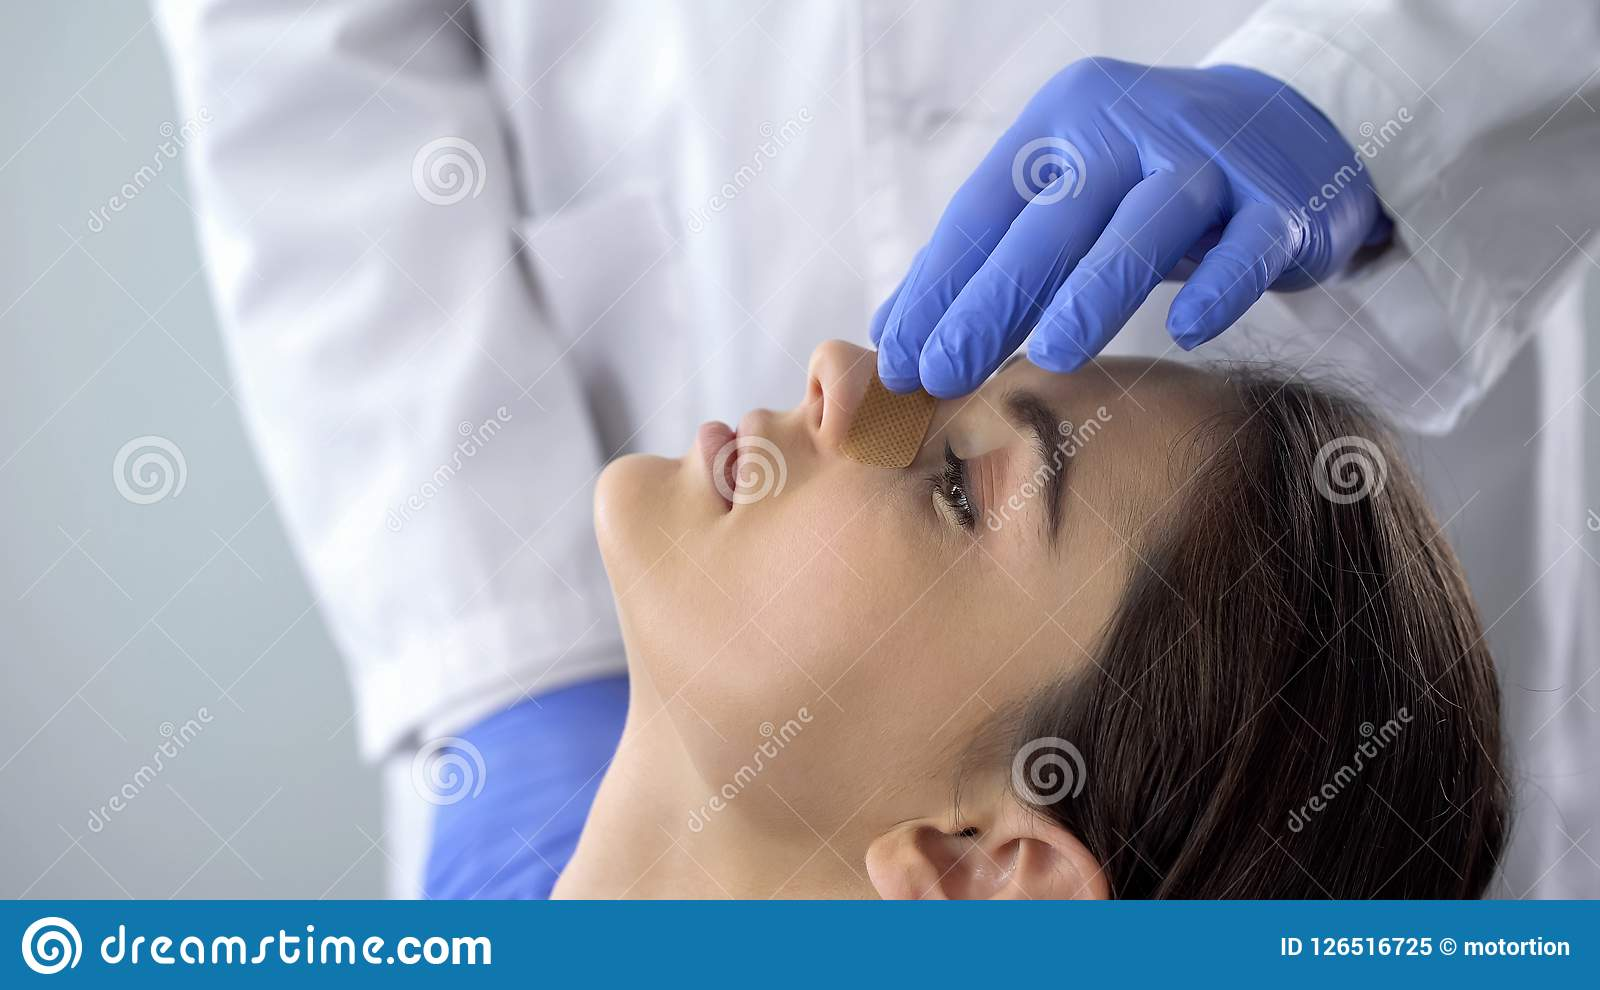 Doctor examining patient nose after rhinoplasty surgery, medical aid, healthcare